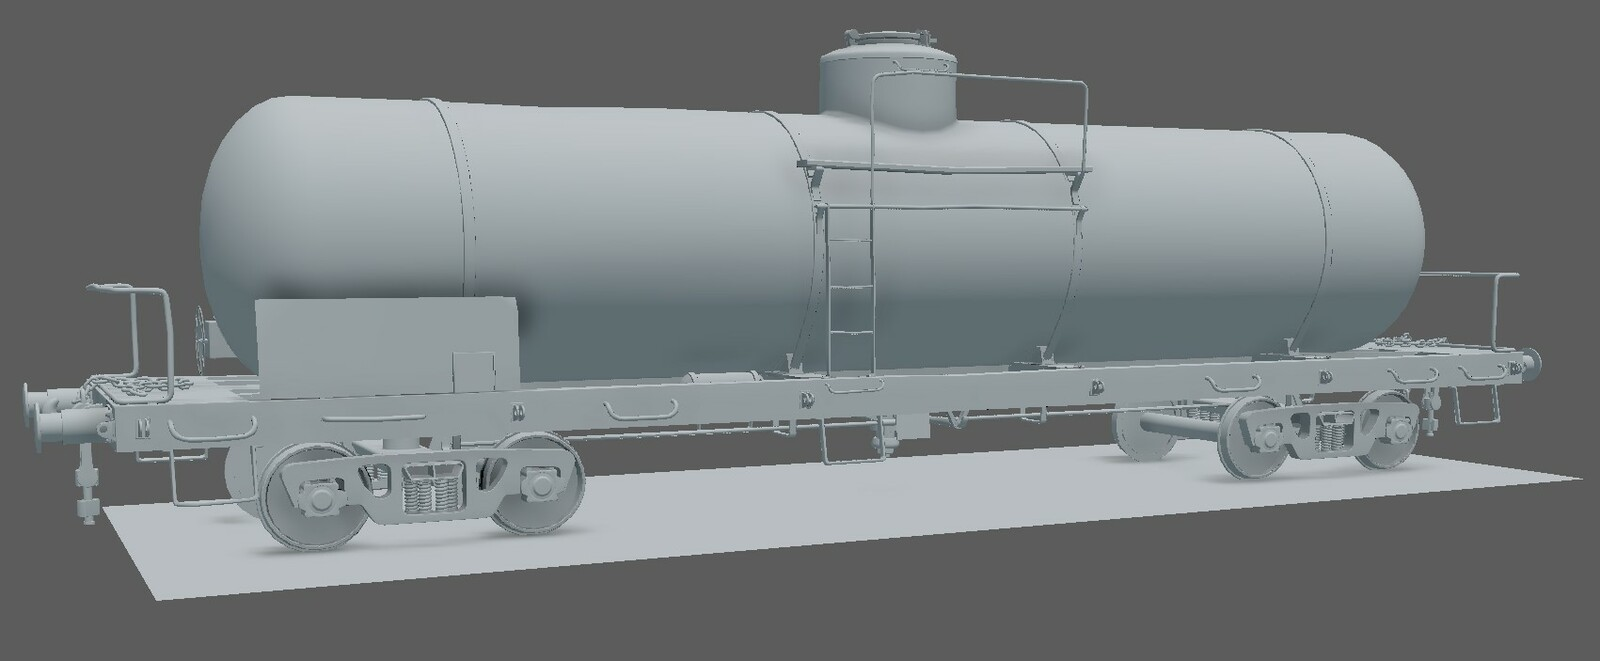 The model before I'd decided to change the direction of the project.